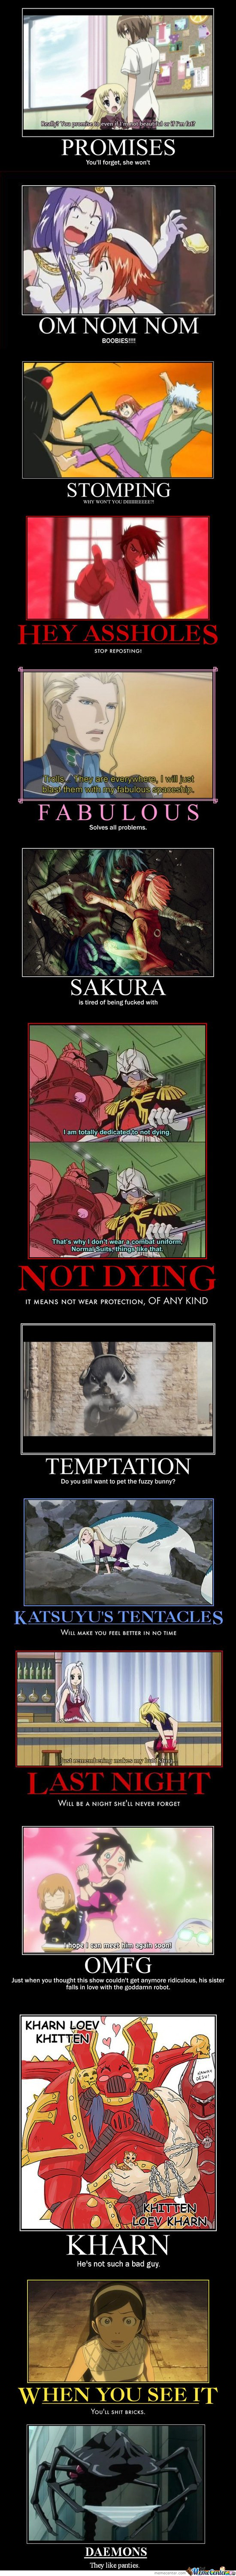 Anime demotivational posters